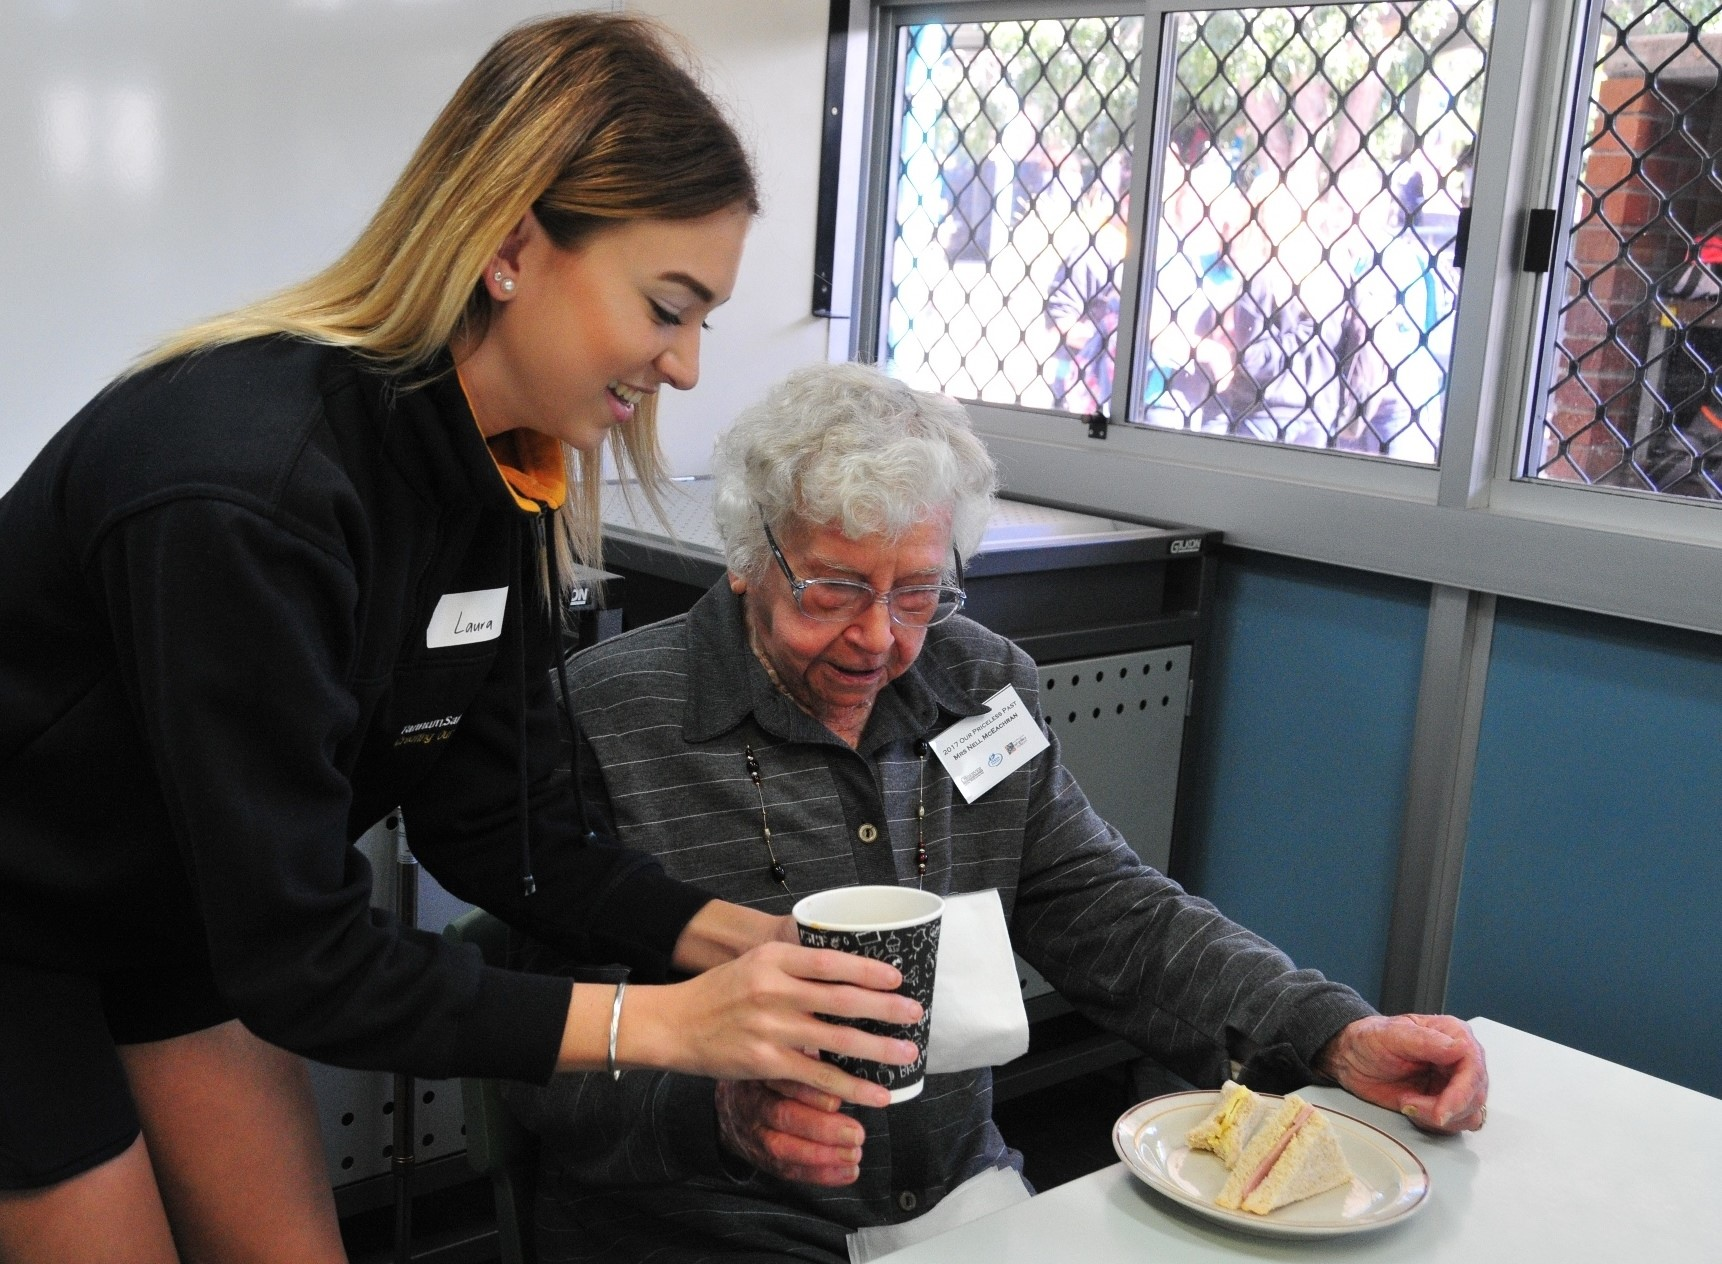 Tannum Sands State High School Year 9's Laura Grummitt serves morning tea to Mrs Nell McEachran, during interviews at the school. (Image: D Paddick)